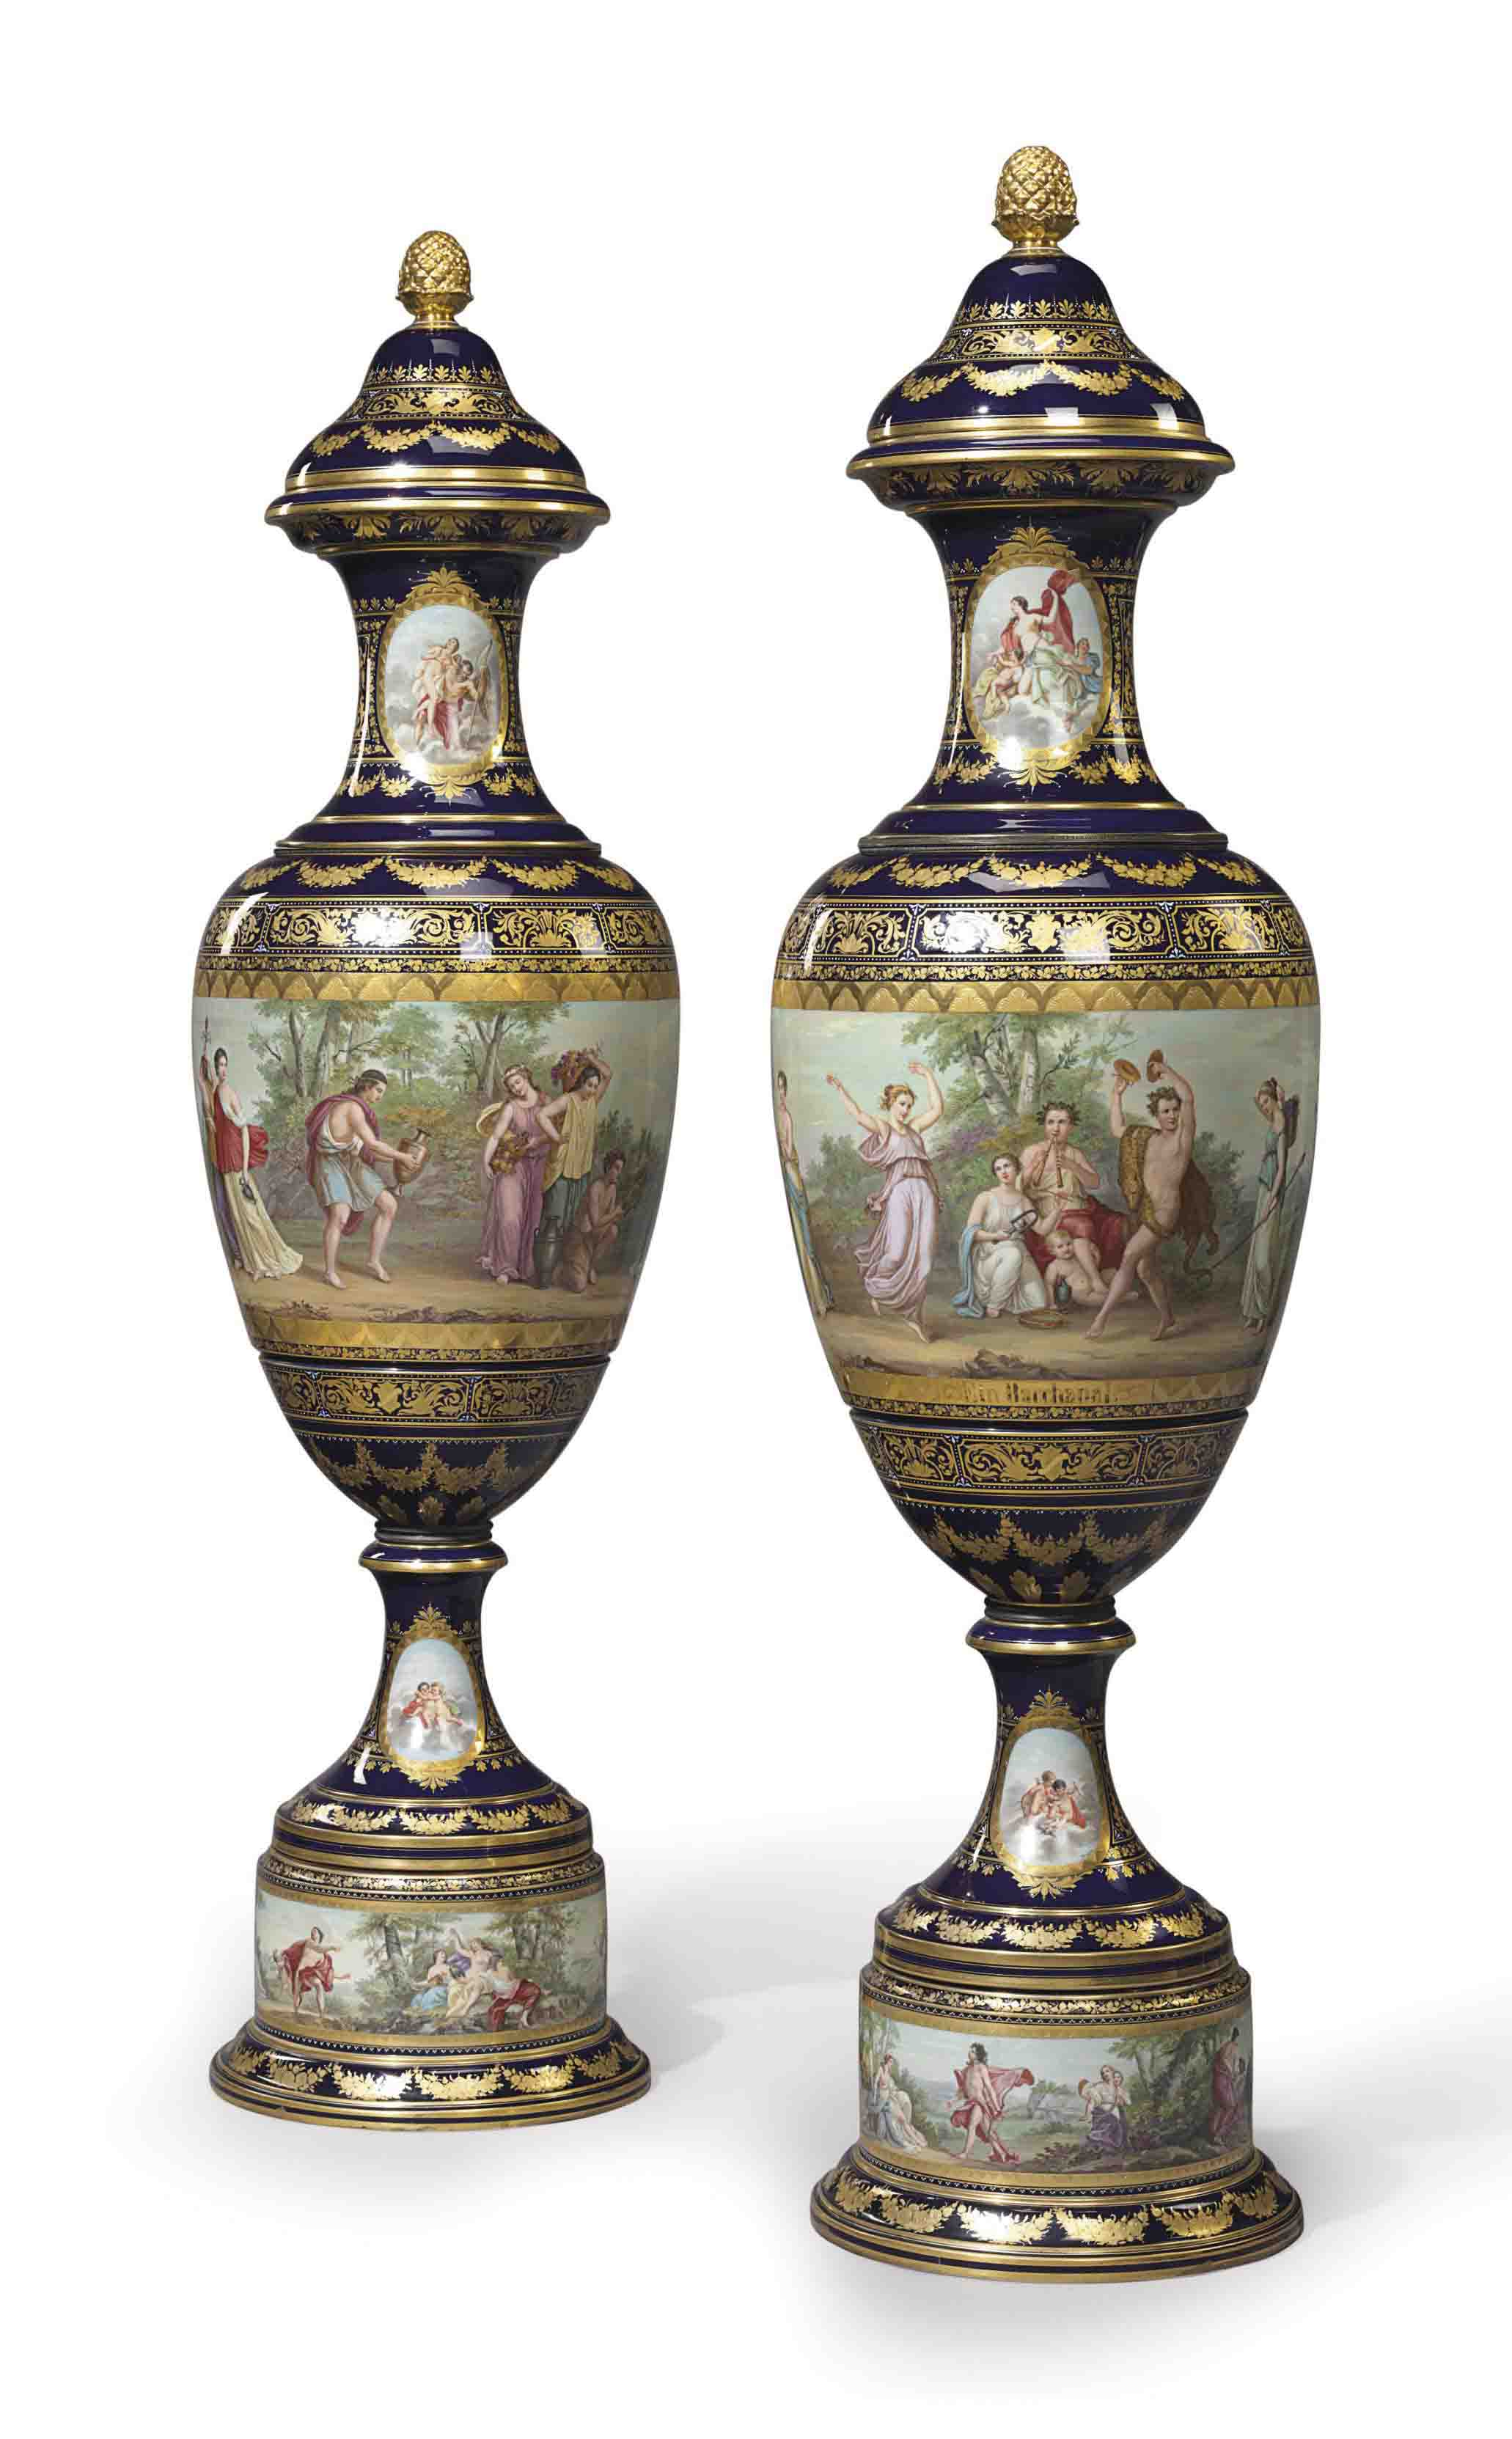 A PAIR OF MONUMENTAL VIENNA STYLE PORCELAIN COBALT-BLUE GROUND VASES AND COVERS, 'EIN BACCHANEL' AND 'EIN BACCHANTENZUG'